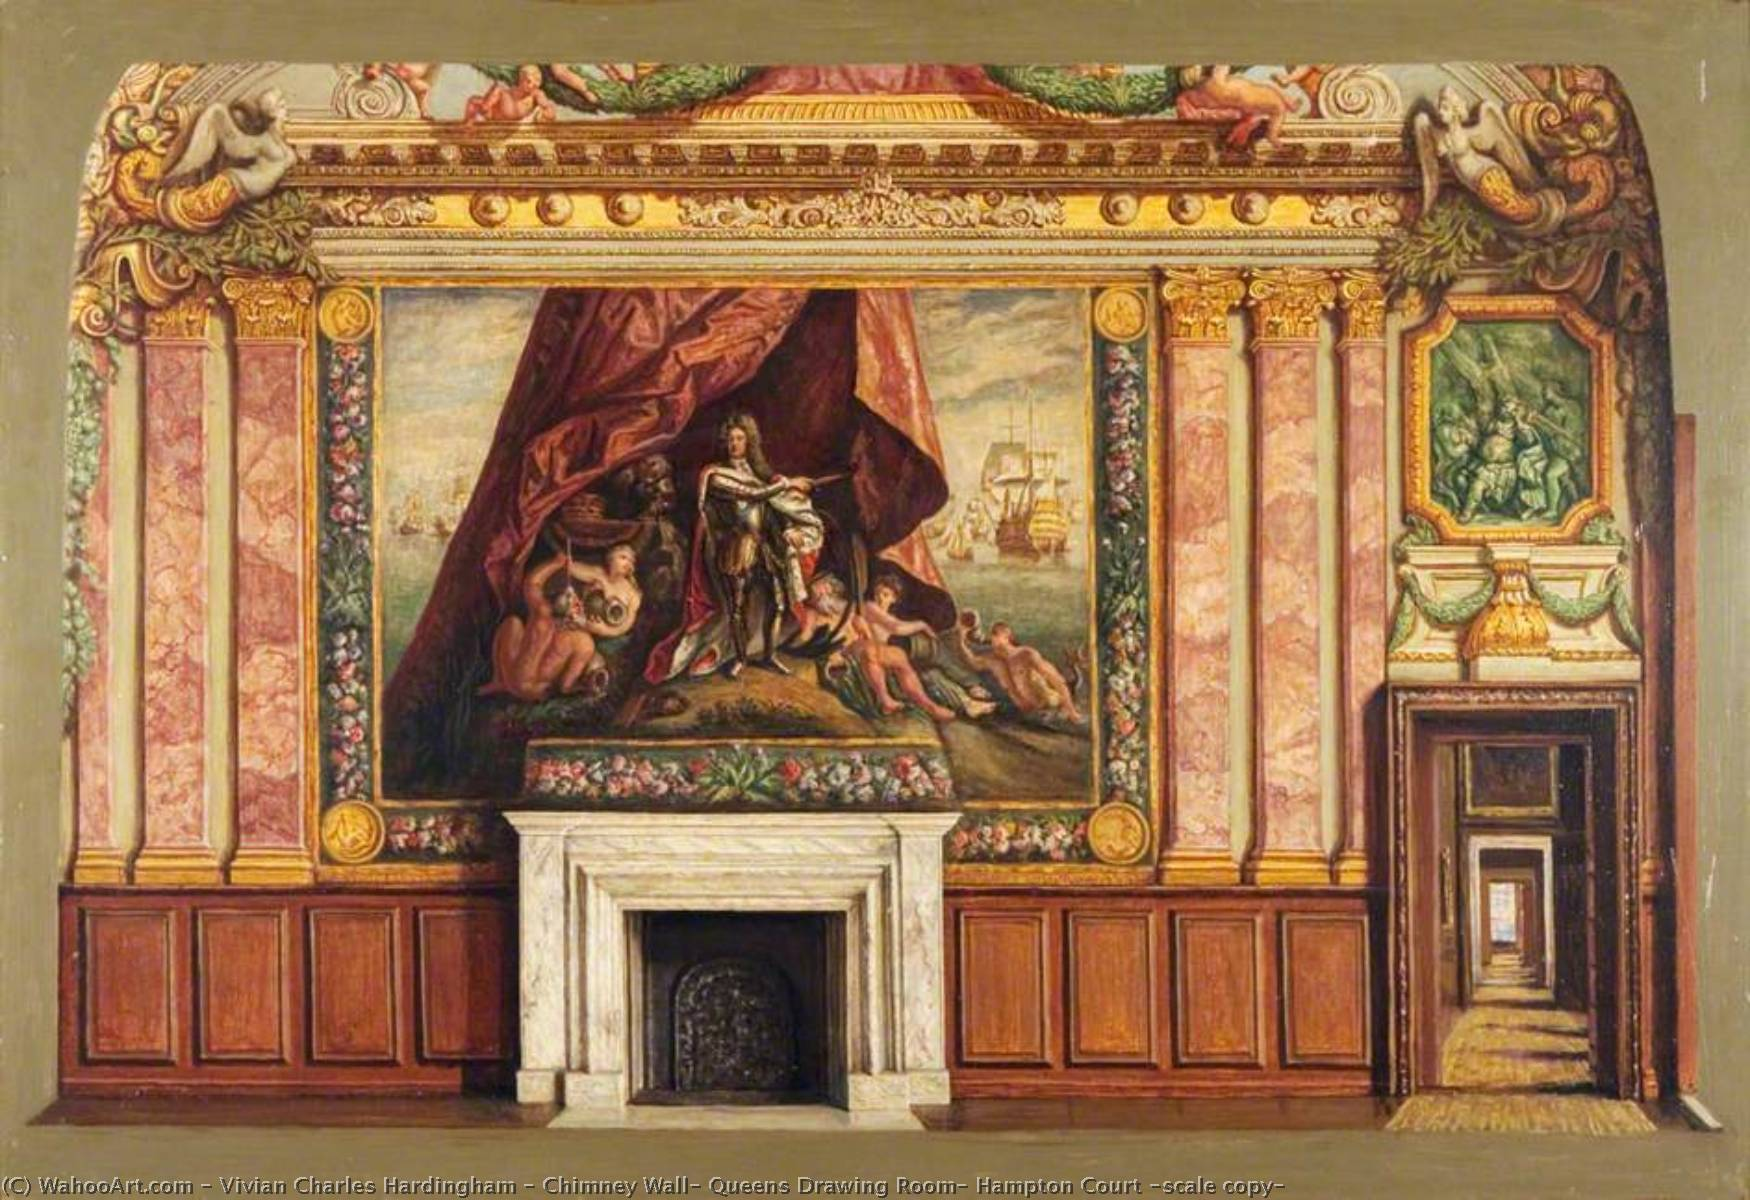 Chimney Wall, Queens Drawing Room, Hampton Court (scale copy) by Vivian Charles Hardingham | Painting Copy | WahooArt.com